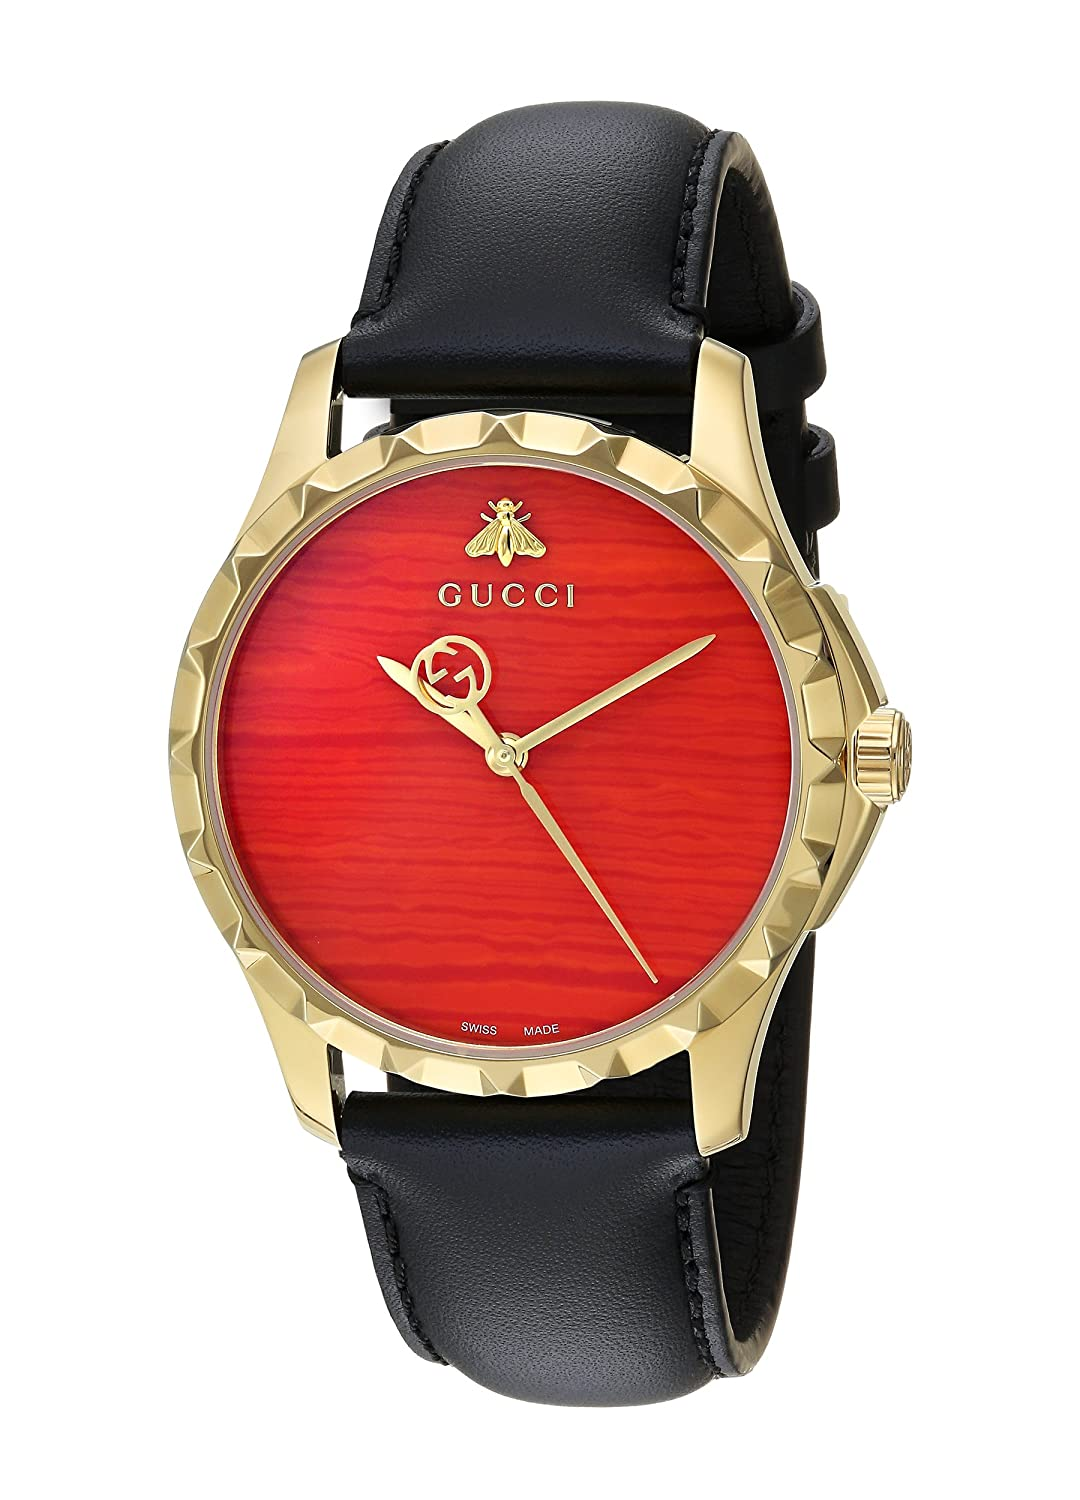 851c2f46093 Top1  Gucci Swiss Quartz Gold-Tone and Leather Dress Black Men s  Watch(Model  YA126464)